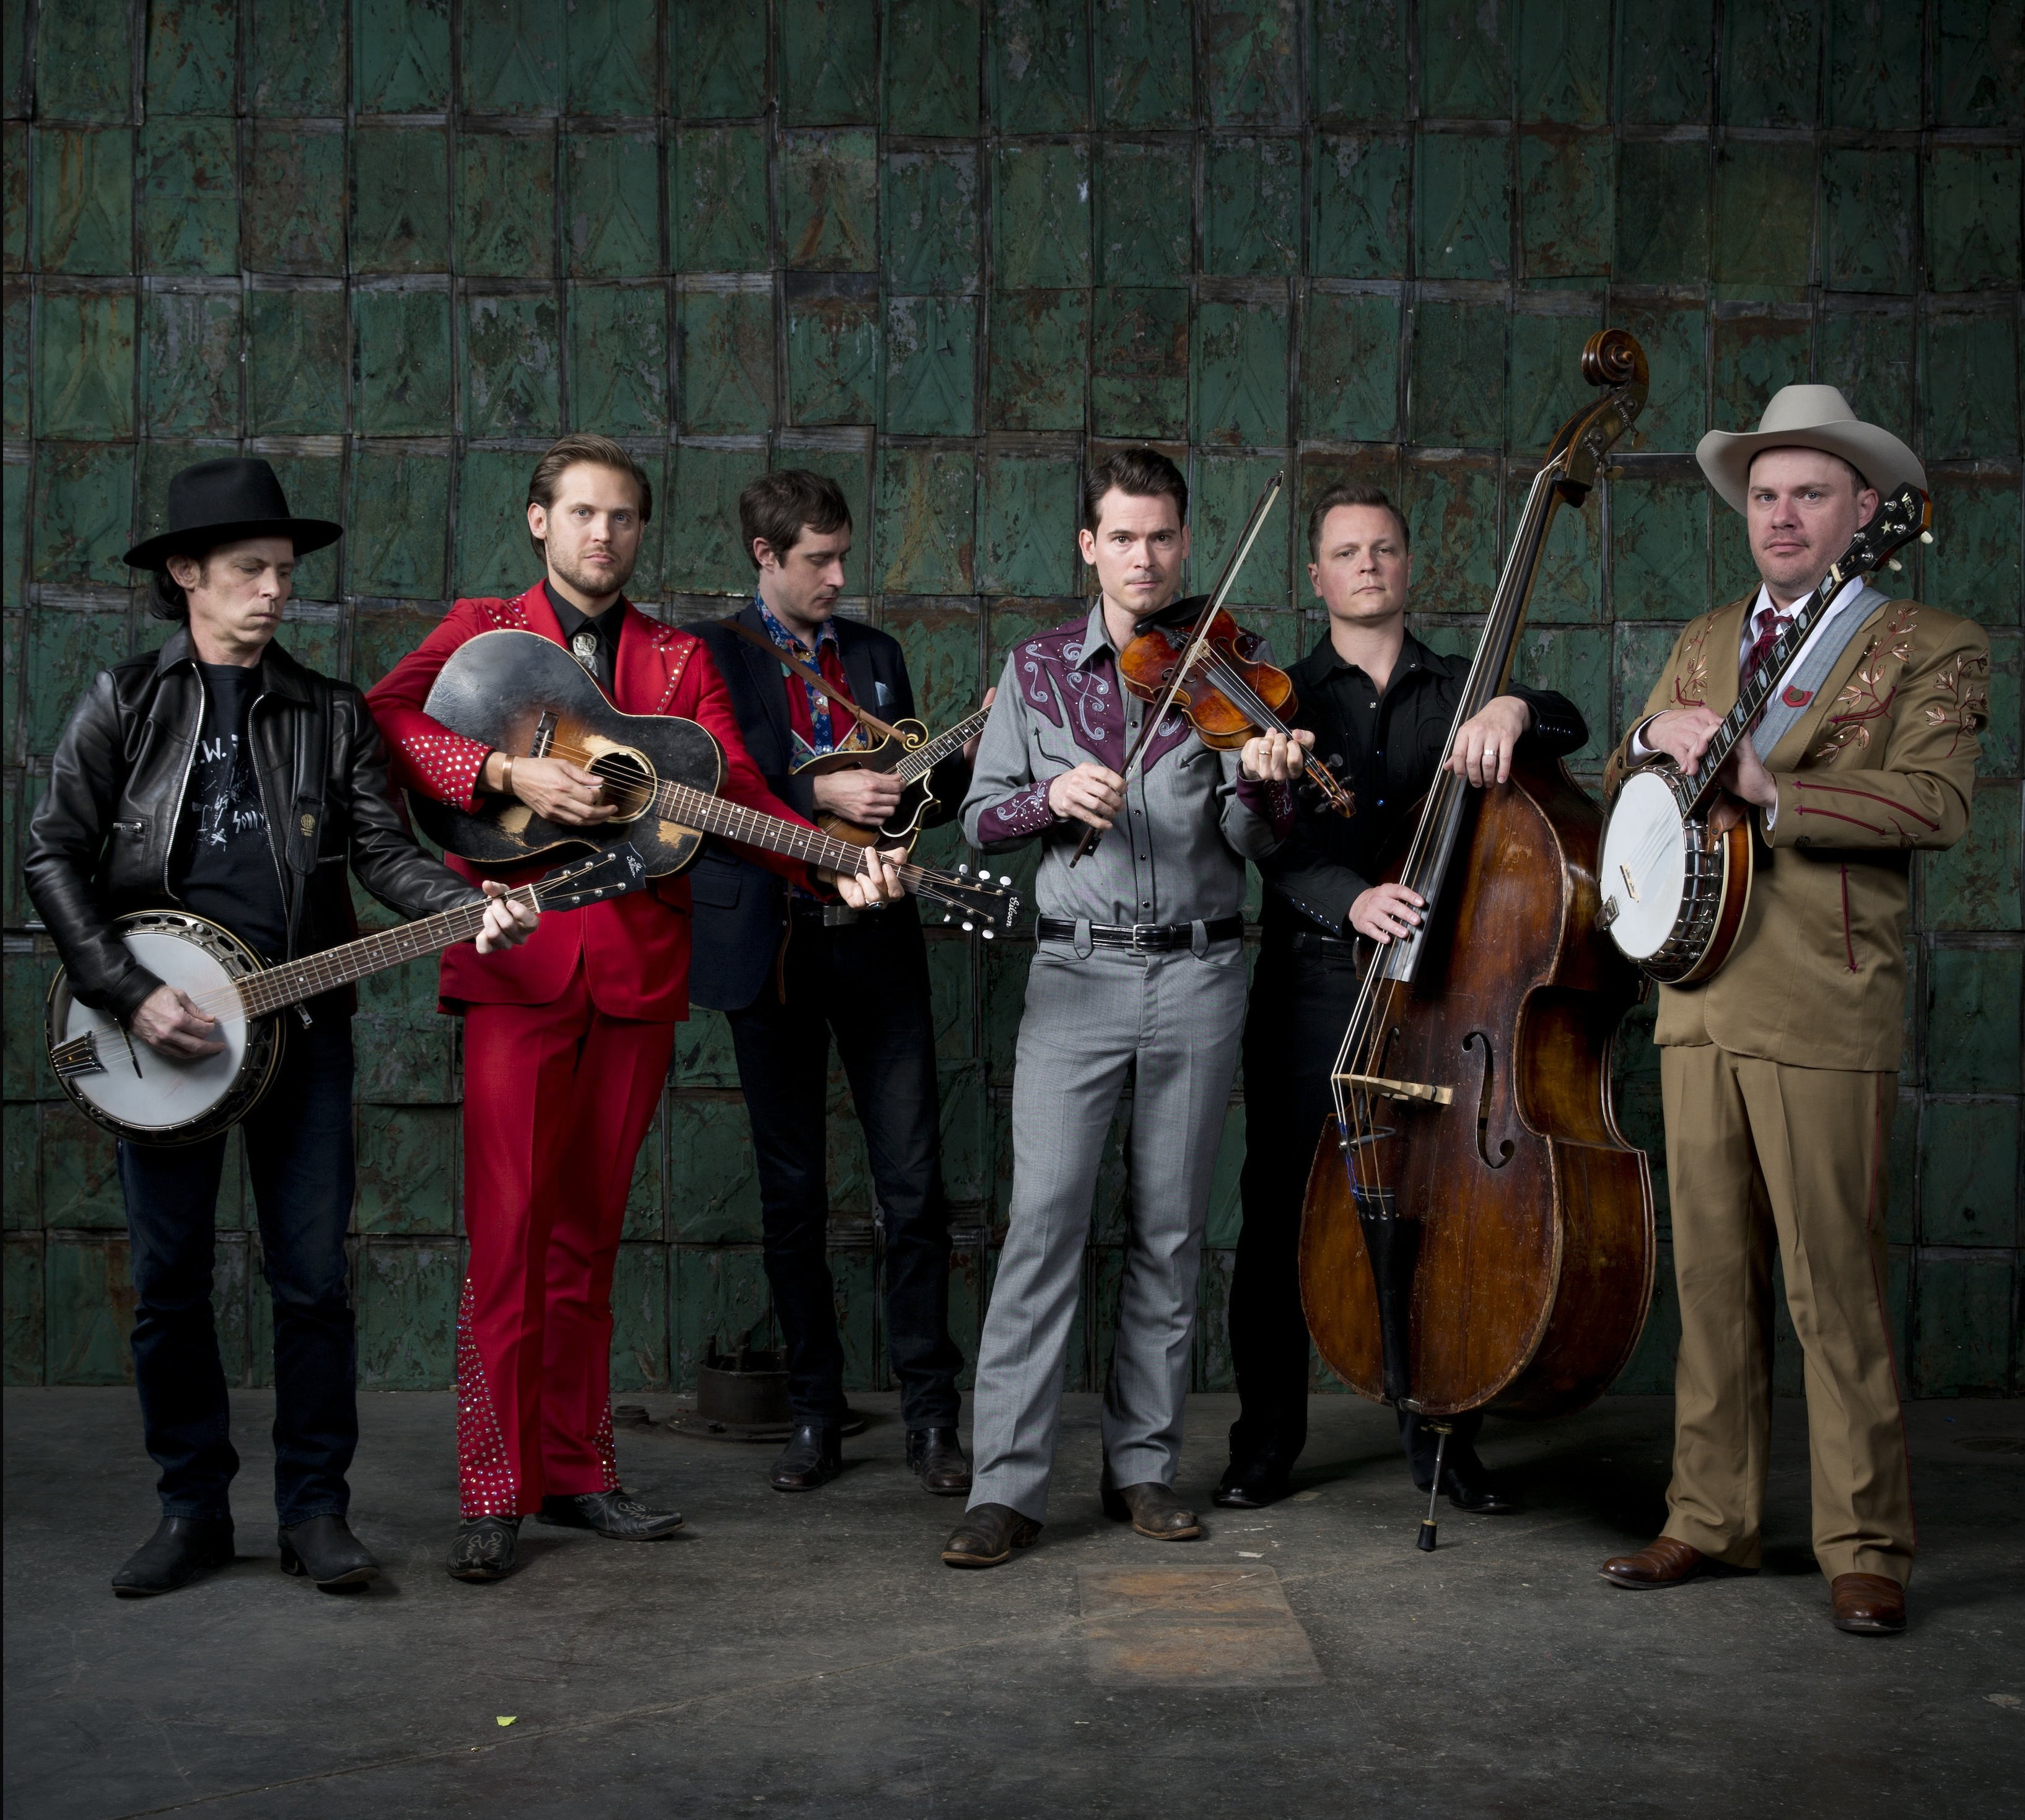 Beyond 'Wagon Wheel': A Conversation With Ketch Secor of Old Crow Medicine Show